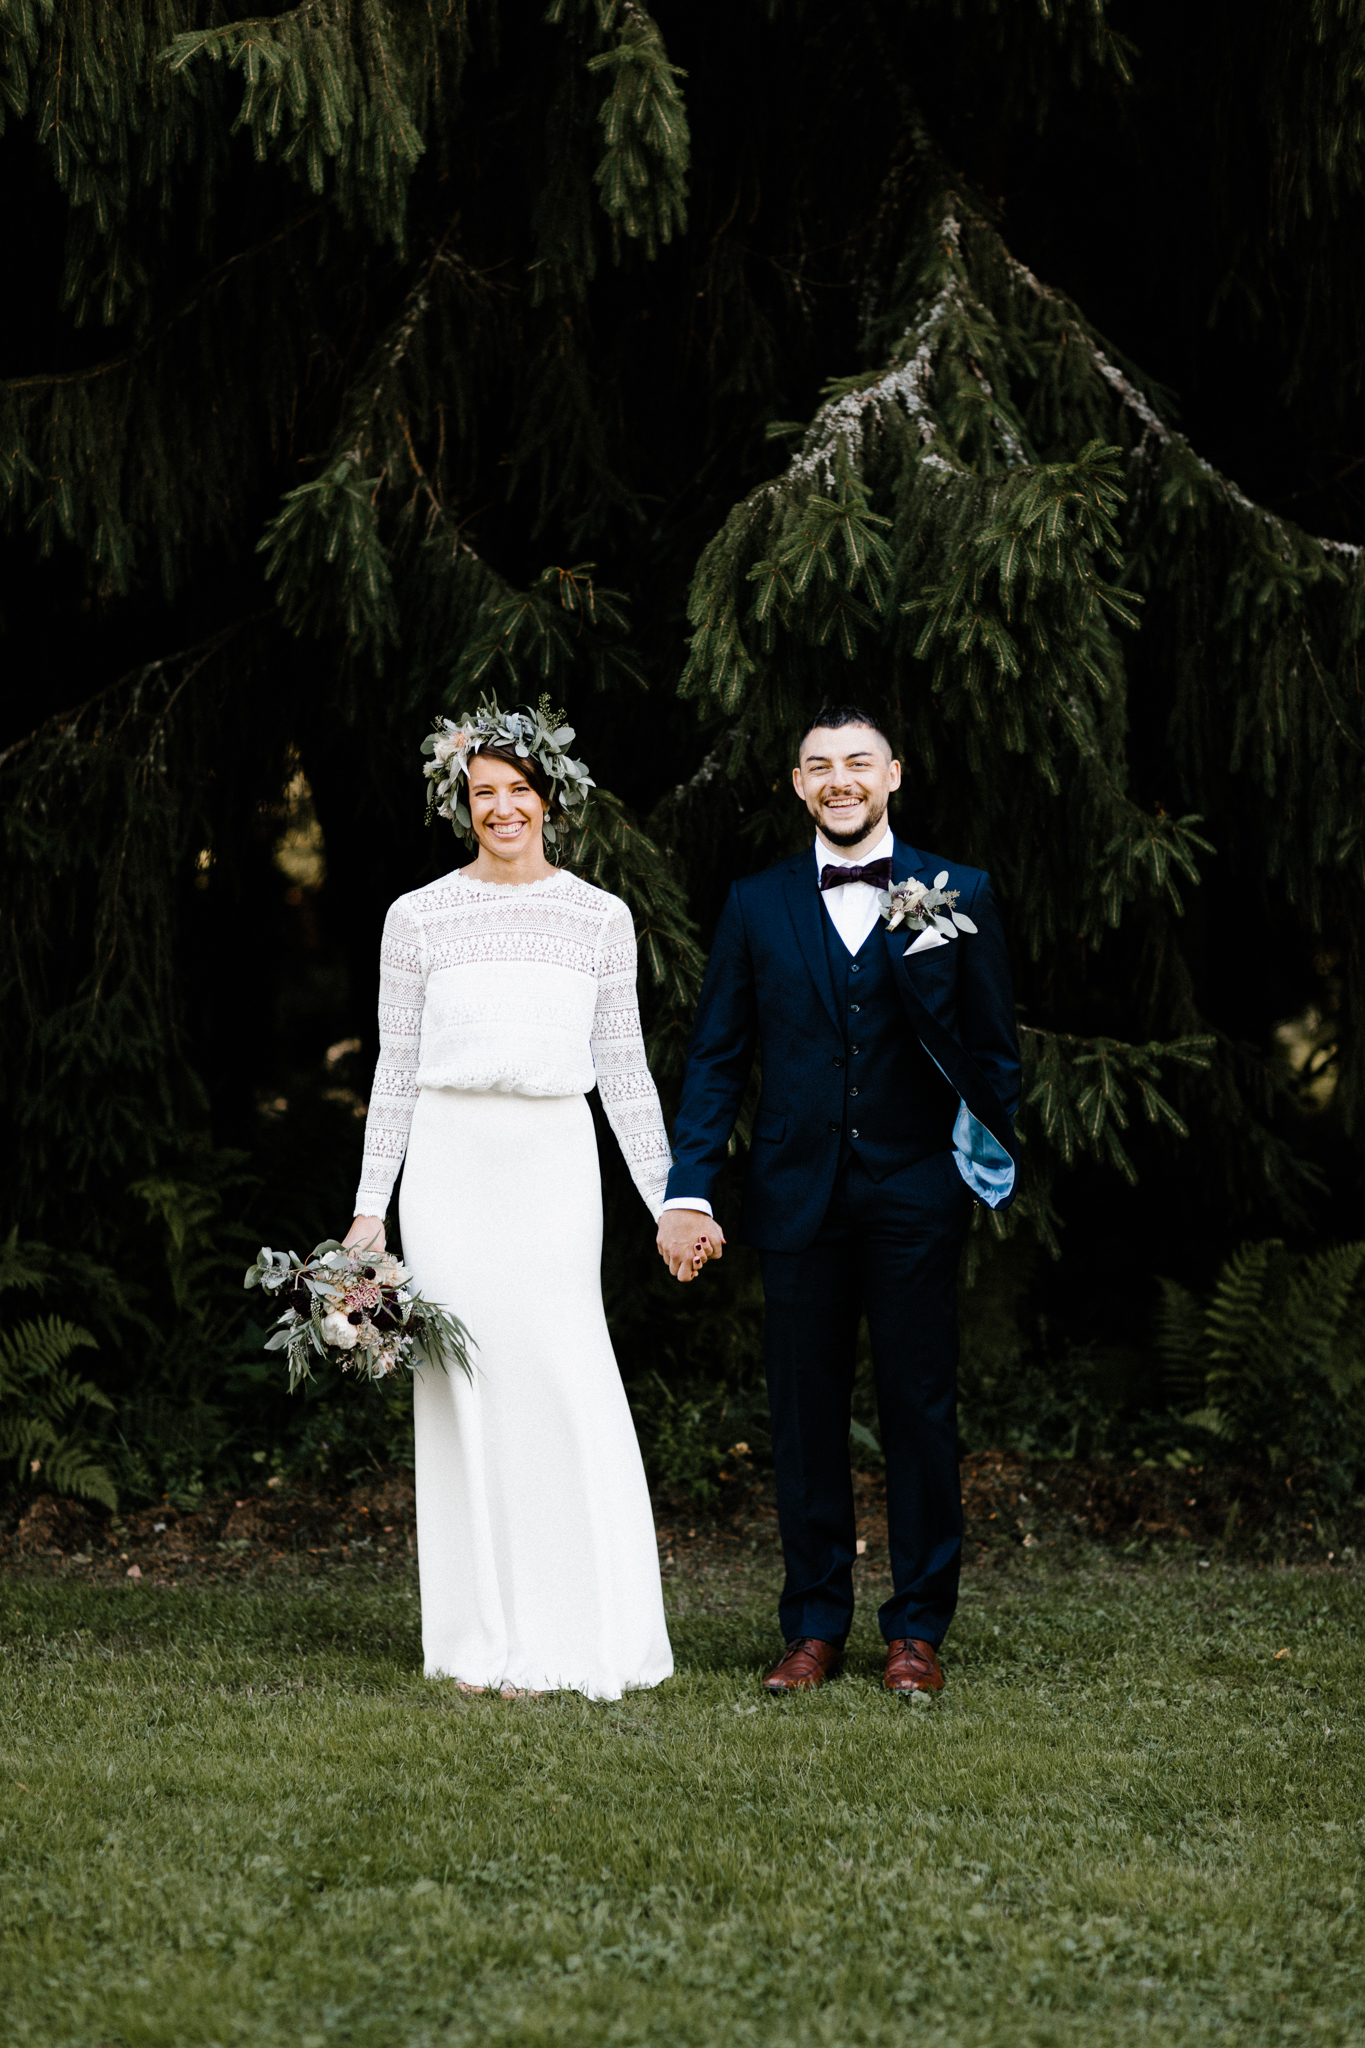 Julien + Johanna | Villa Ivan Falin | by Patrick Karkkolainen Wedding Photography-119.jpg